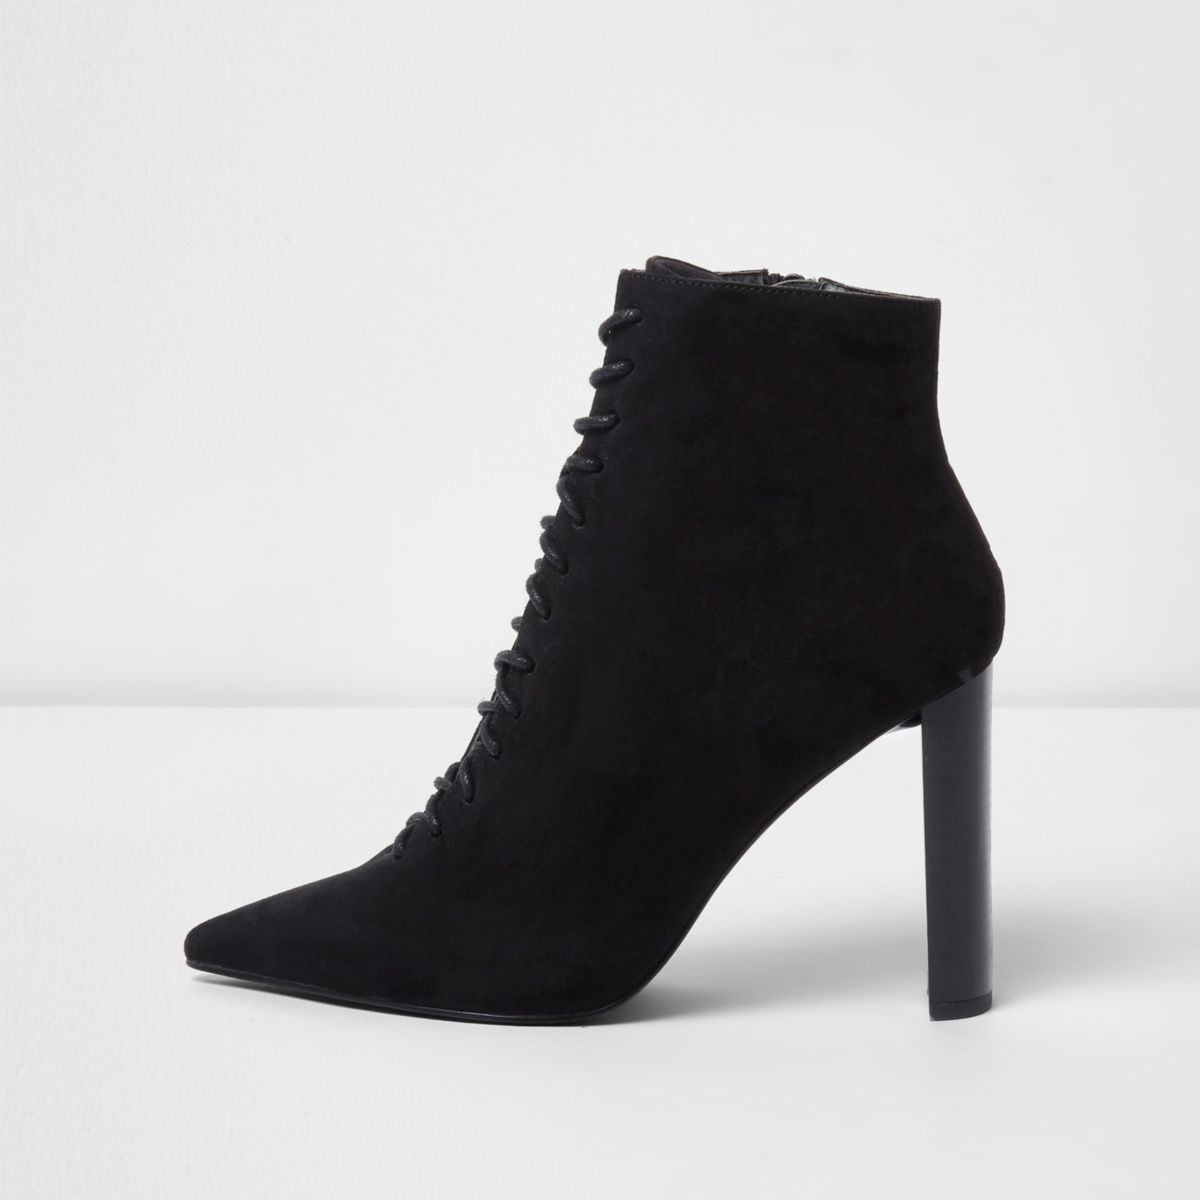 Black pointed lace up boots